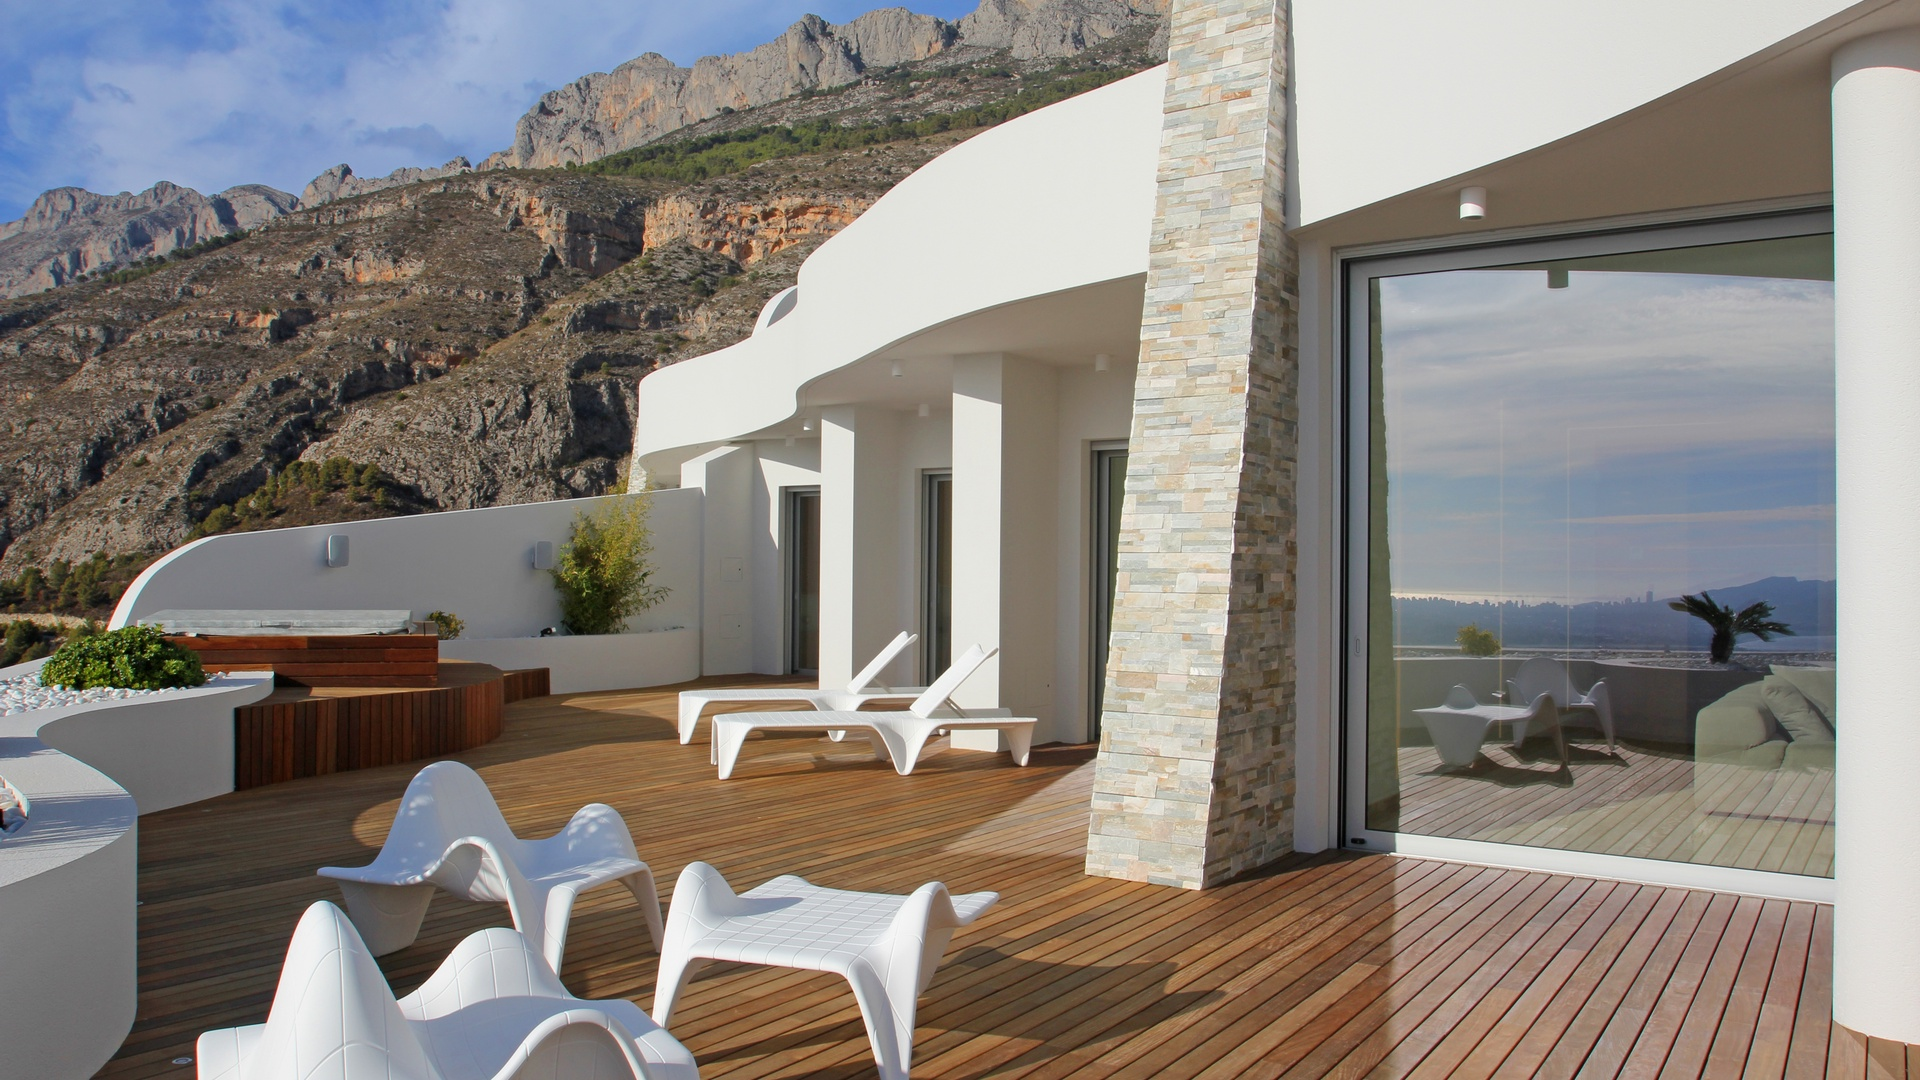 Altea Alicante | Ocean Suites  | UK£ 800,000